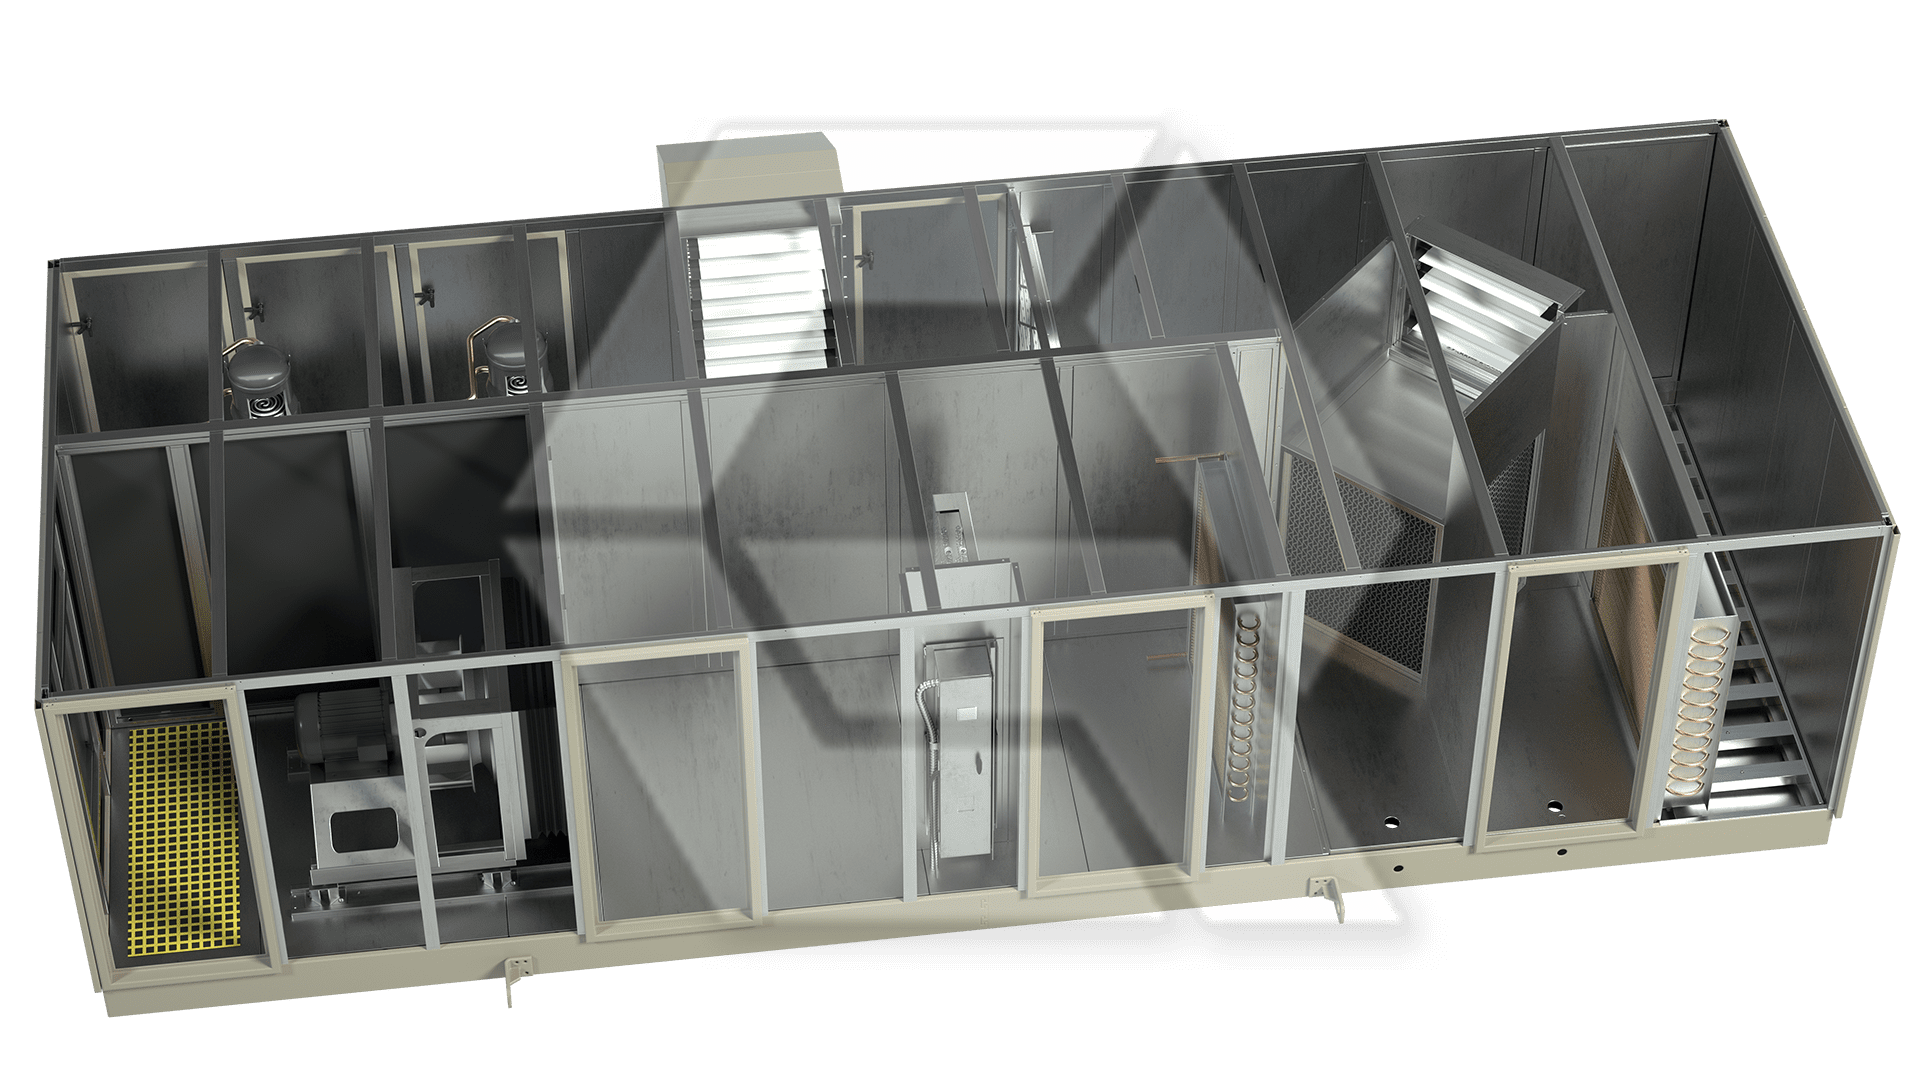 Innovent AHU 7825073-00020 - LASER I Open View